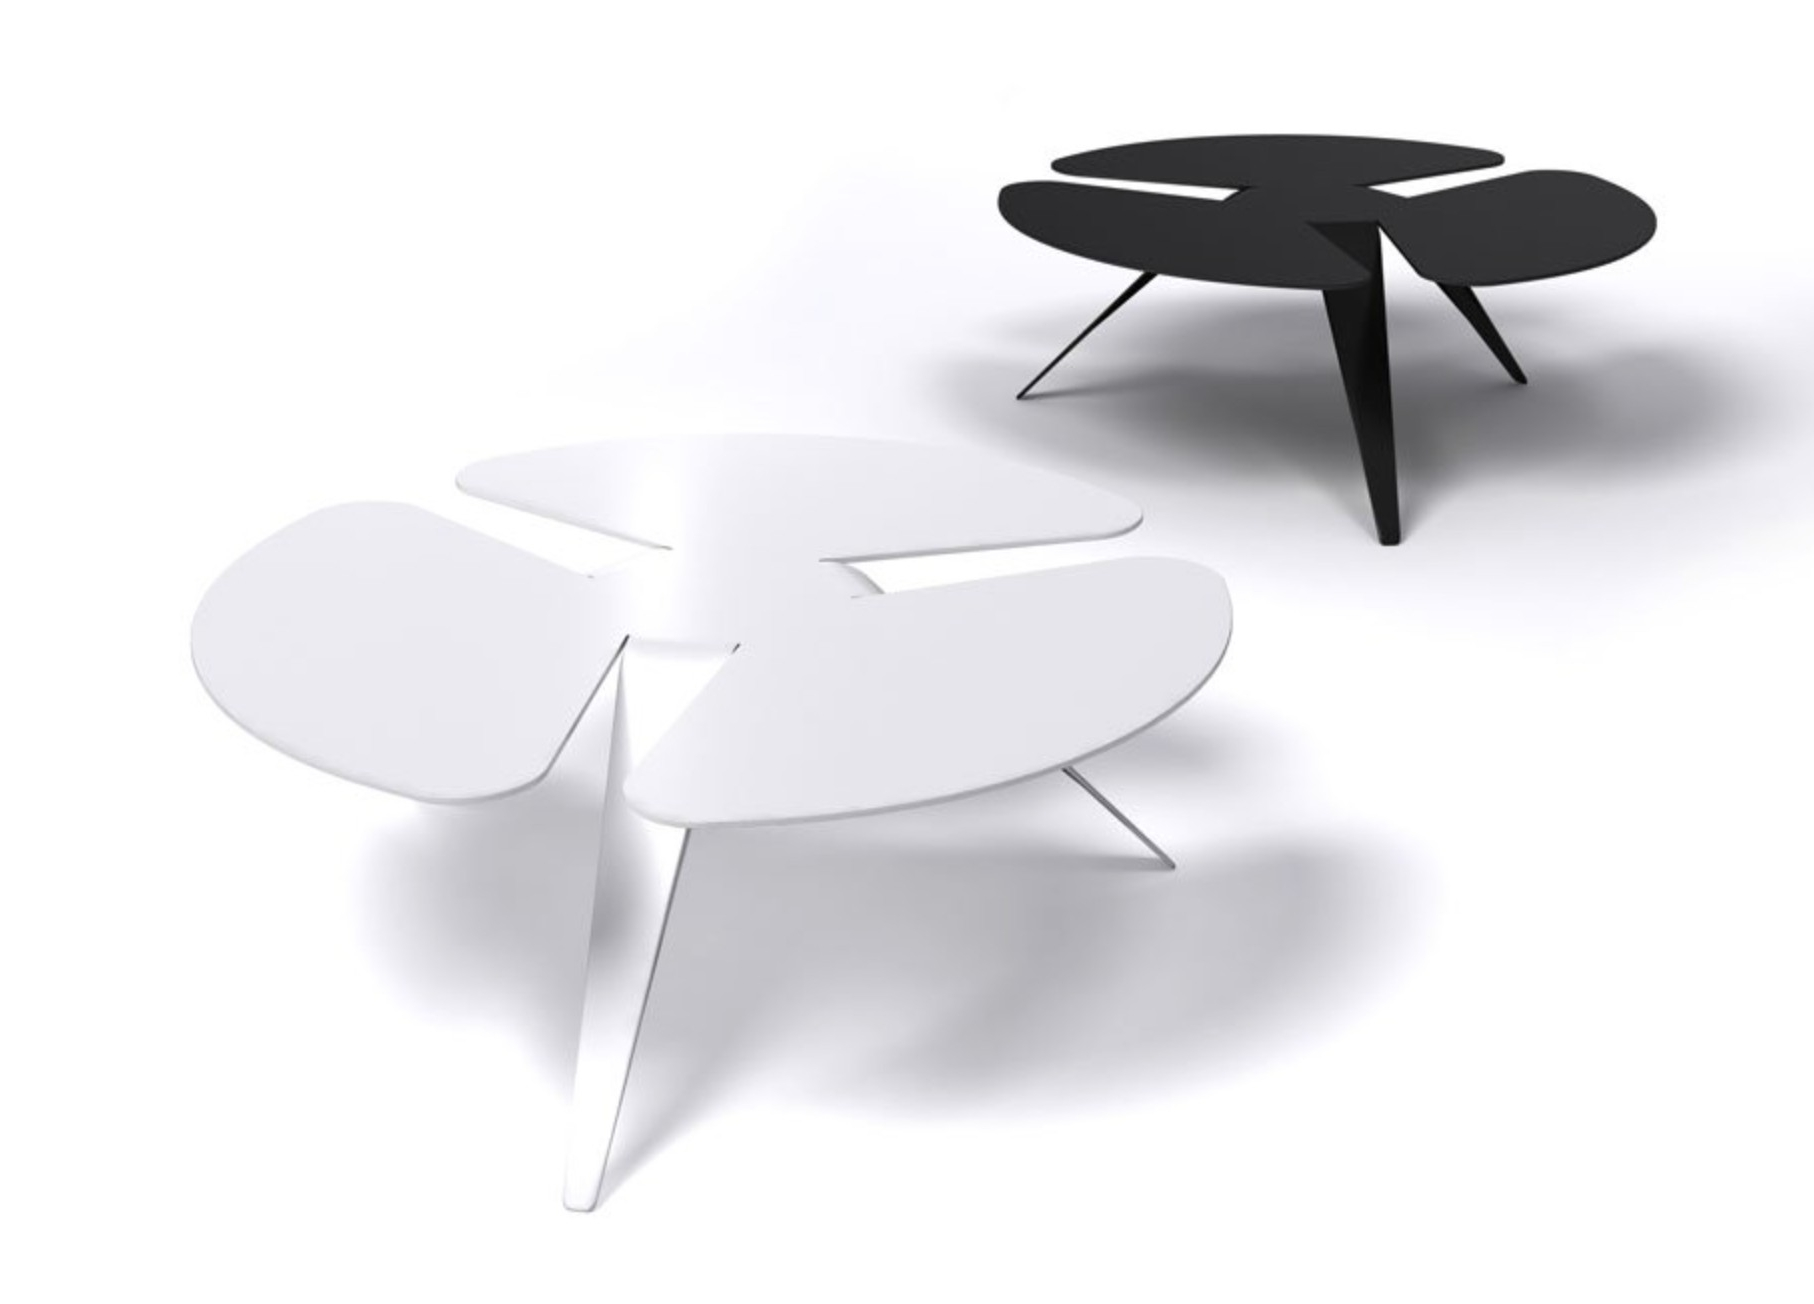 2018 Potomac Adjustable Coffee Tables Throughout 11 Lovely Metal Coffee Table Sets (Gallery 15 of 20)